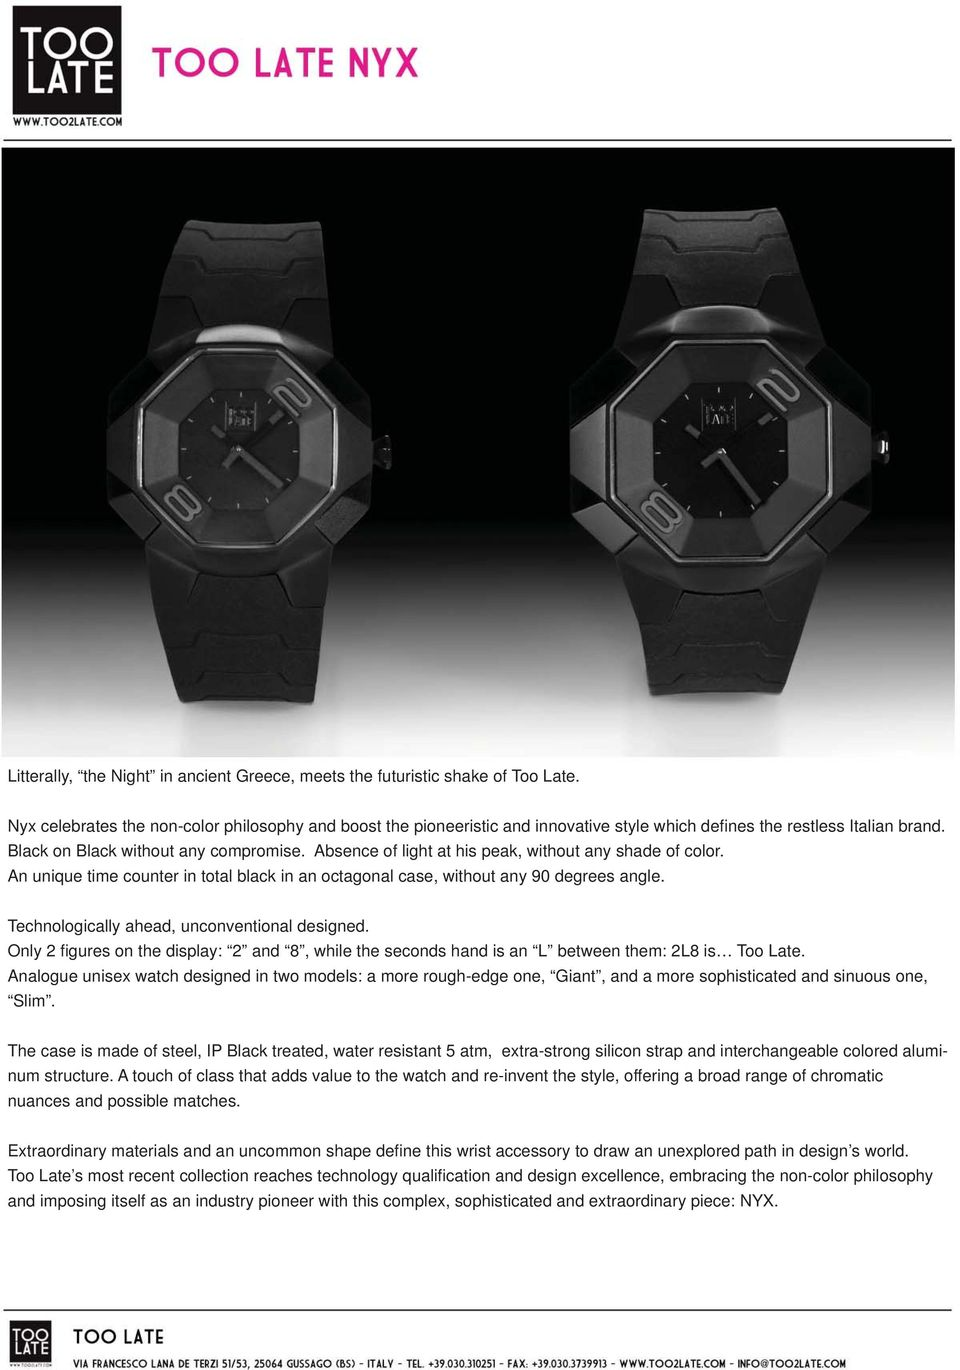 Absence of light at his peak, without any shade of color. An unique time counter in total black in an octagonal case, without any 90 degrees angle. Technologically ahead, unconventional designed.